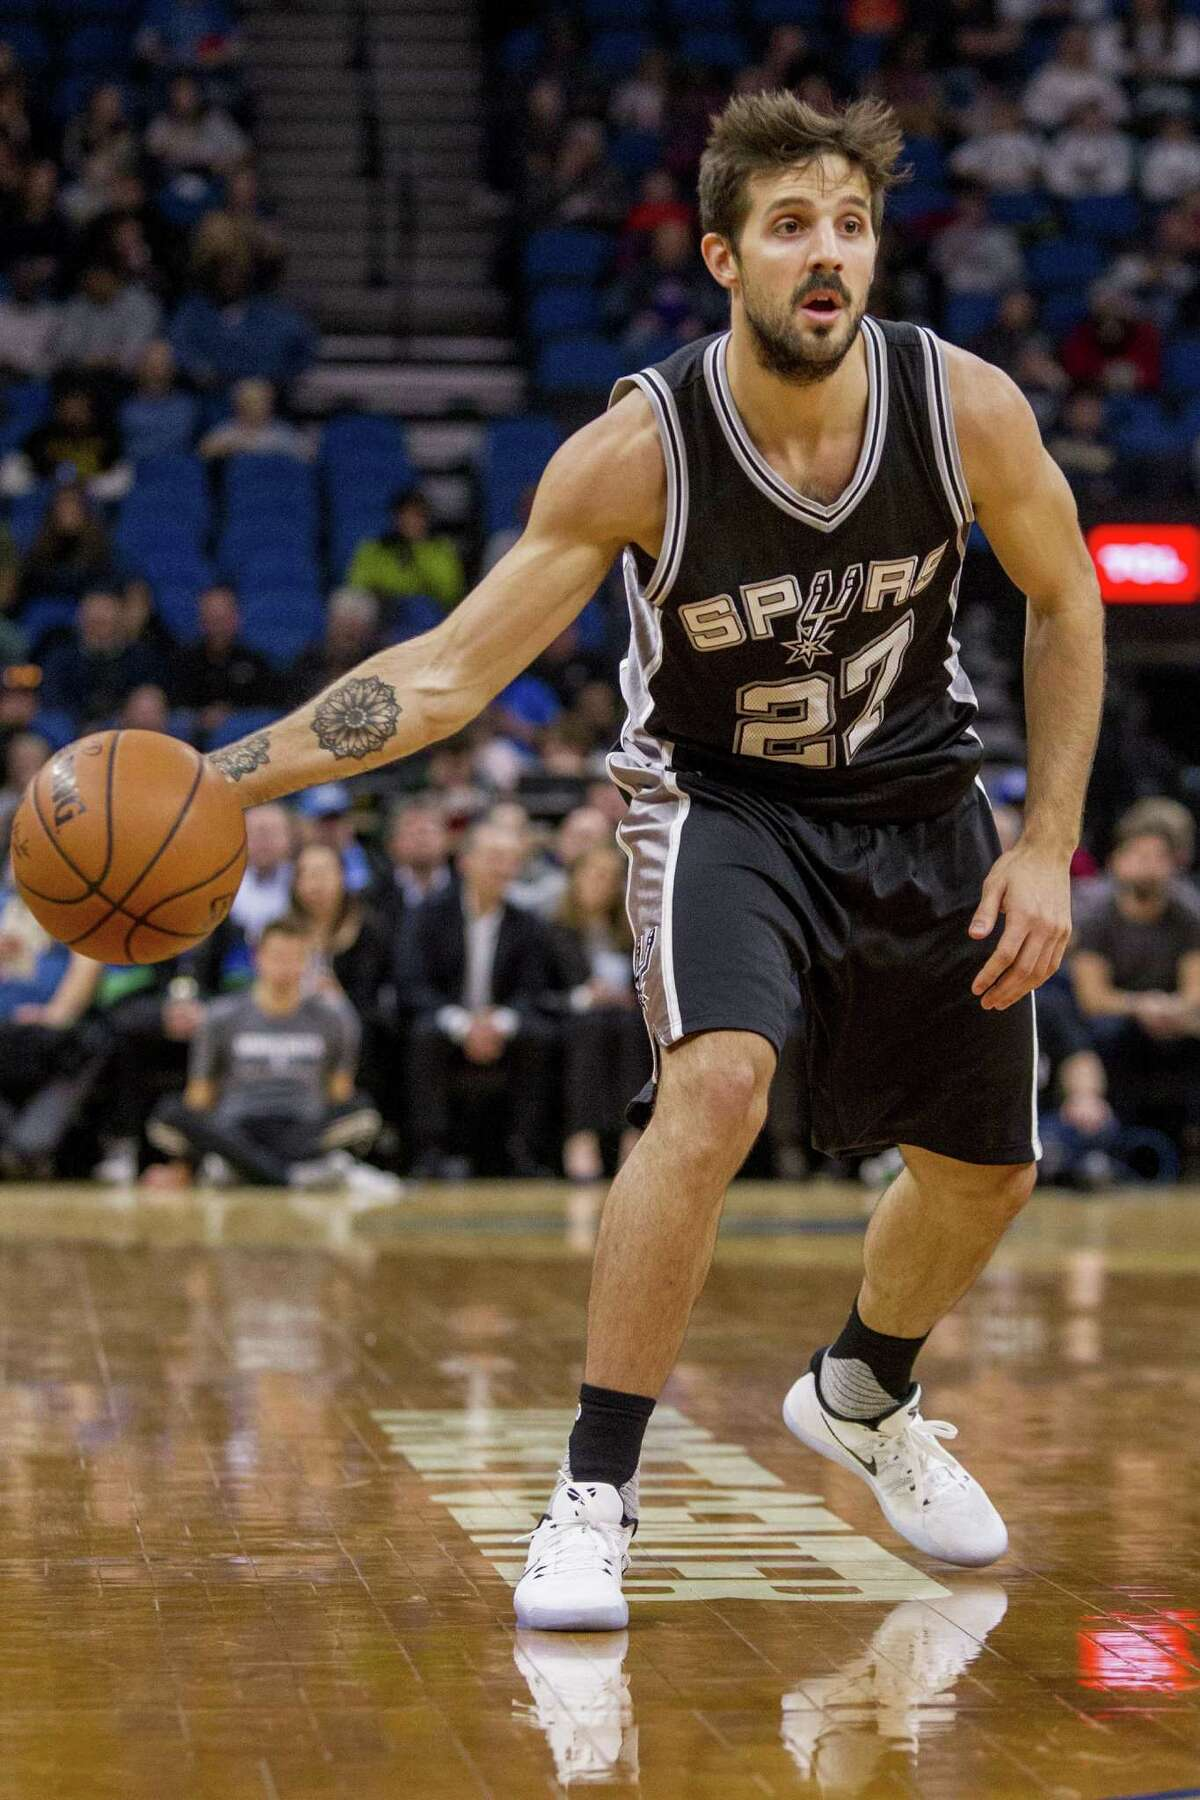 15. Nicolas Laprovittola  Laprovittola made the Spurs' roster out of training camp and actually started three games before being waived at the end of December. He appeared in 18 contests, averaging 3.3 points and 1.6 assists.